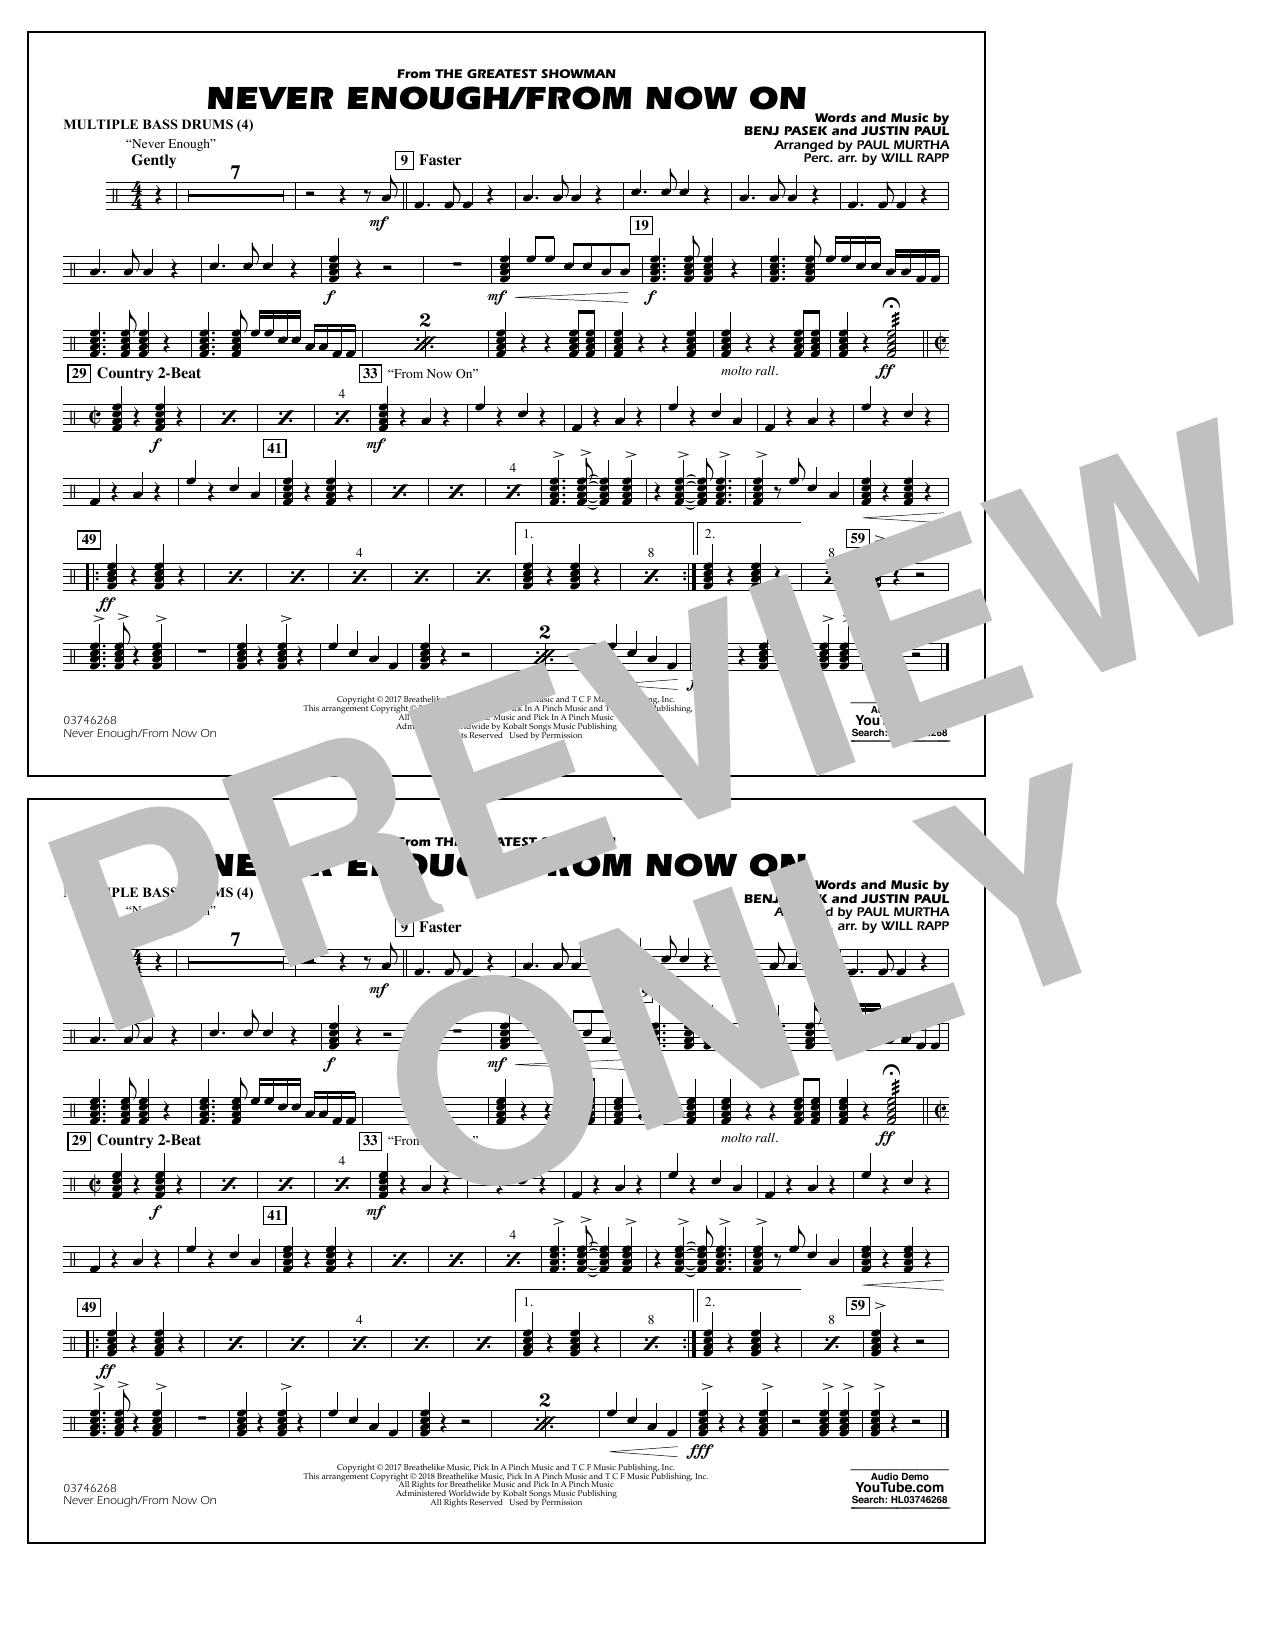 Never Enough/From Now On - Multiple Bass Drums (Marching Band)